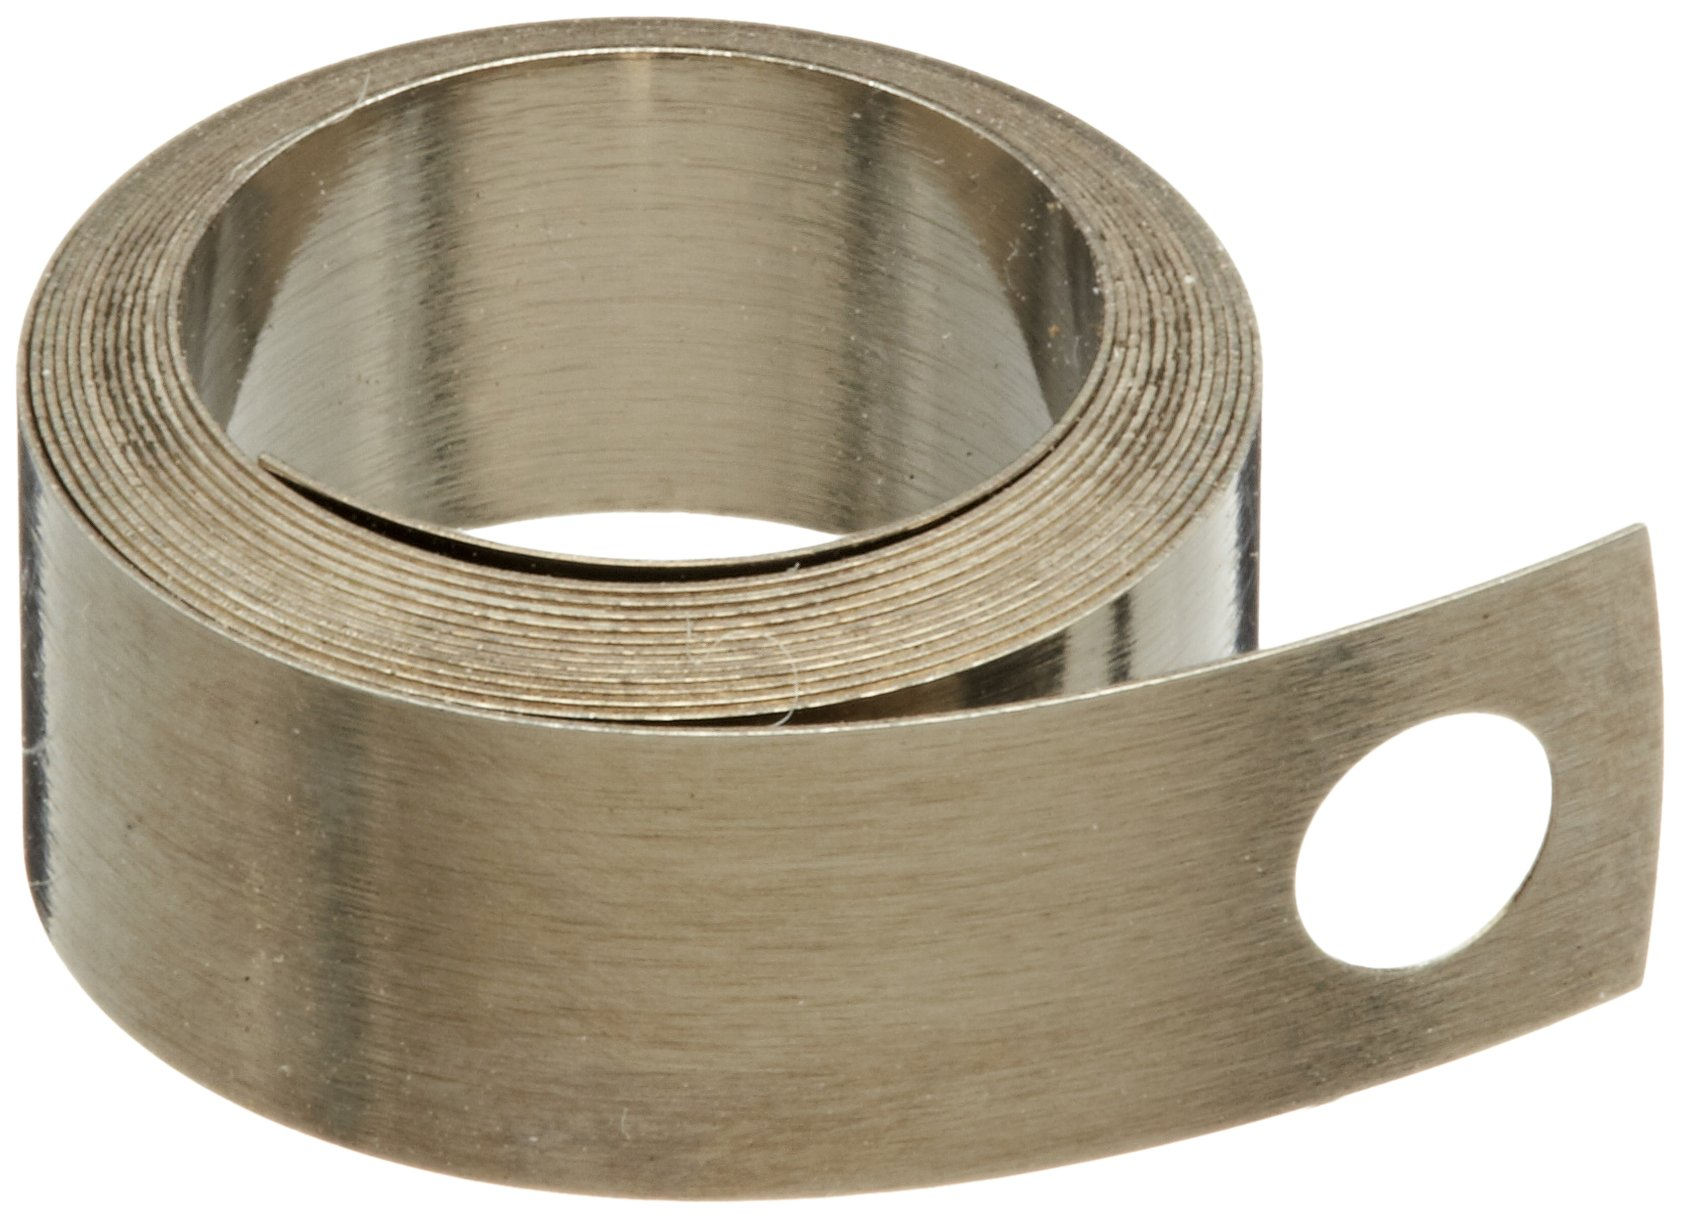 "Constant Force Spring, 301 Stainless Steel, Inch, 2500 Cycle Life, 30"" Extended Length, 0.5"" Width, 0.59"" ID, 0.7"" OD, 0.19"" End Hole Diameter, 2.63lbs/in Load Capacity (Pack of 5)"